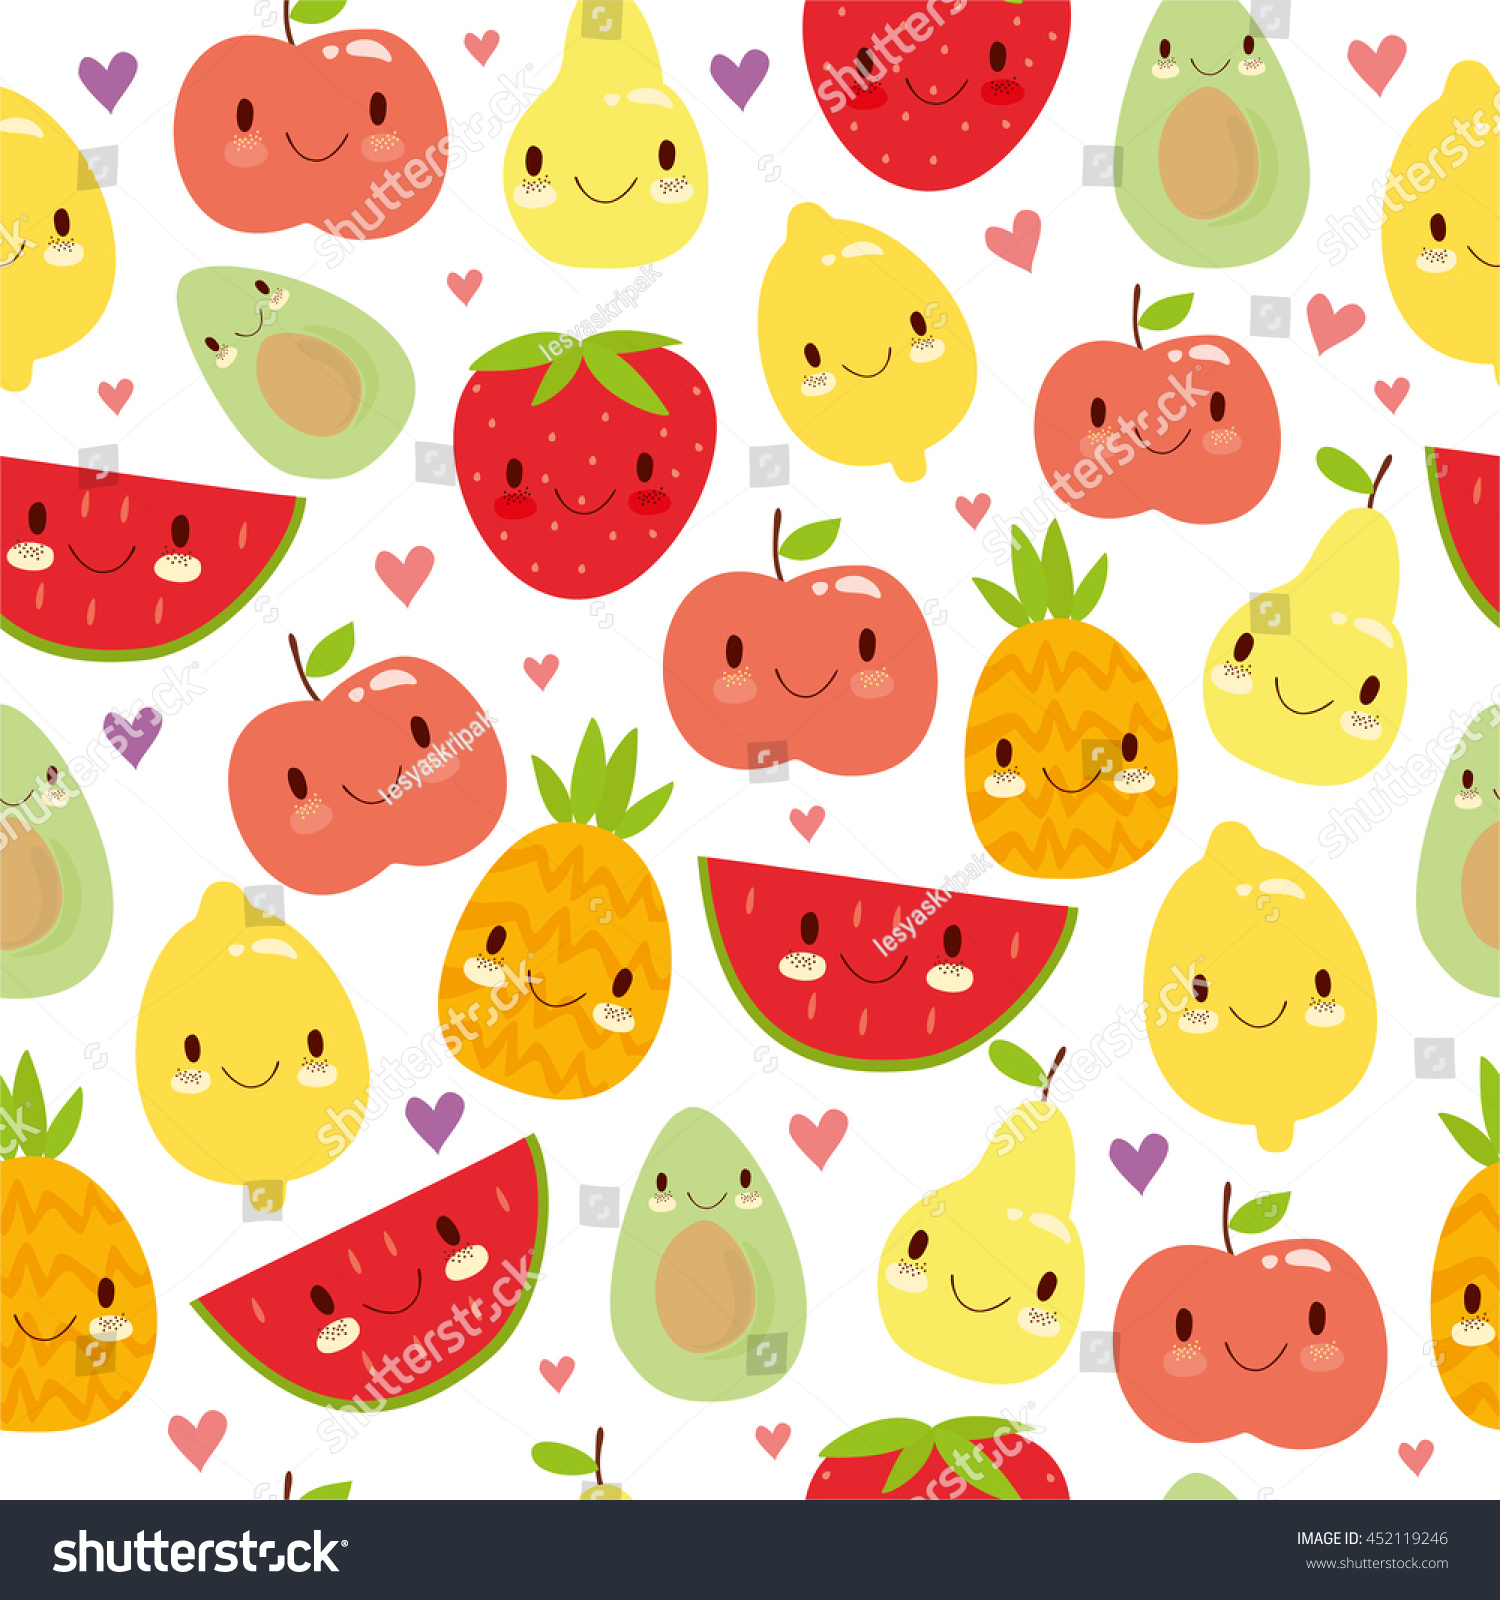 Cool Wallpaper Macbook Pineapple - stock-vector-vector-seamless-pattern-with-cute-smiling-fruit-apple-pineapple-lemon-avocado-strawberry-452119246  Pictures_388216.jpg